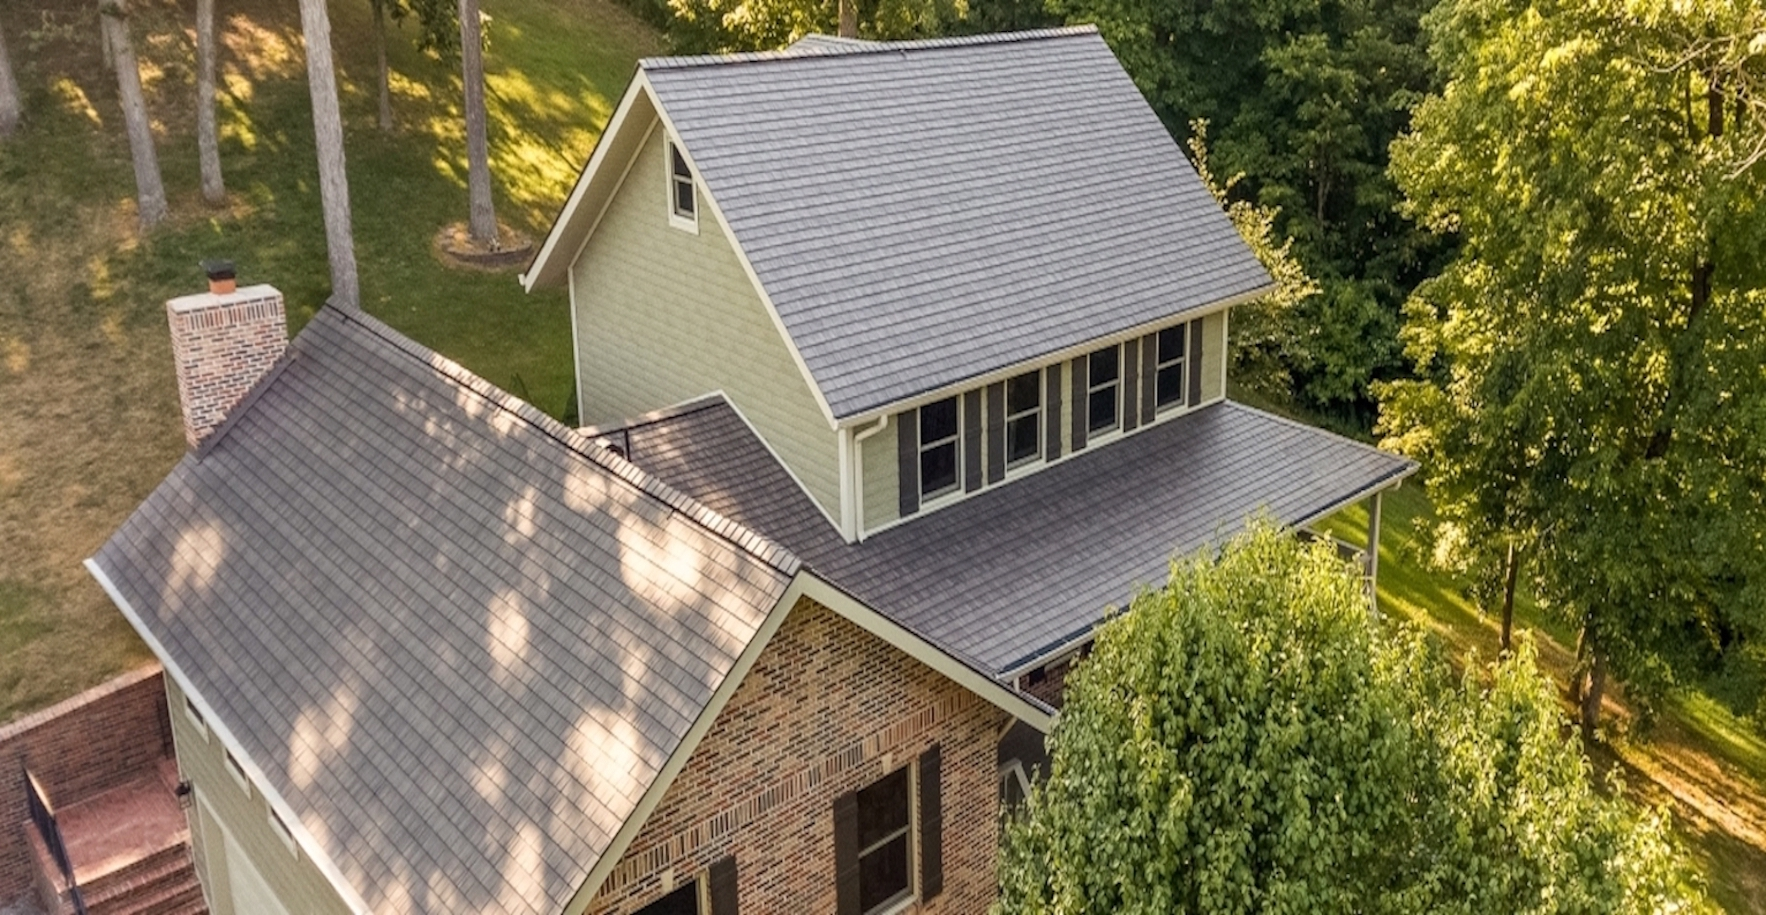 Top-View-Of-A-House-With-Blue-shingles-Roofing